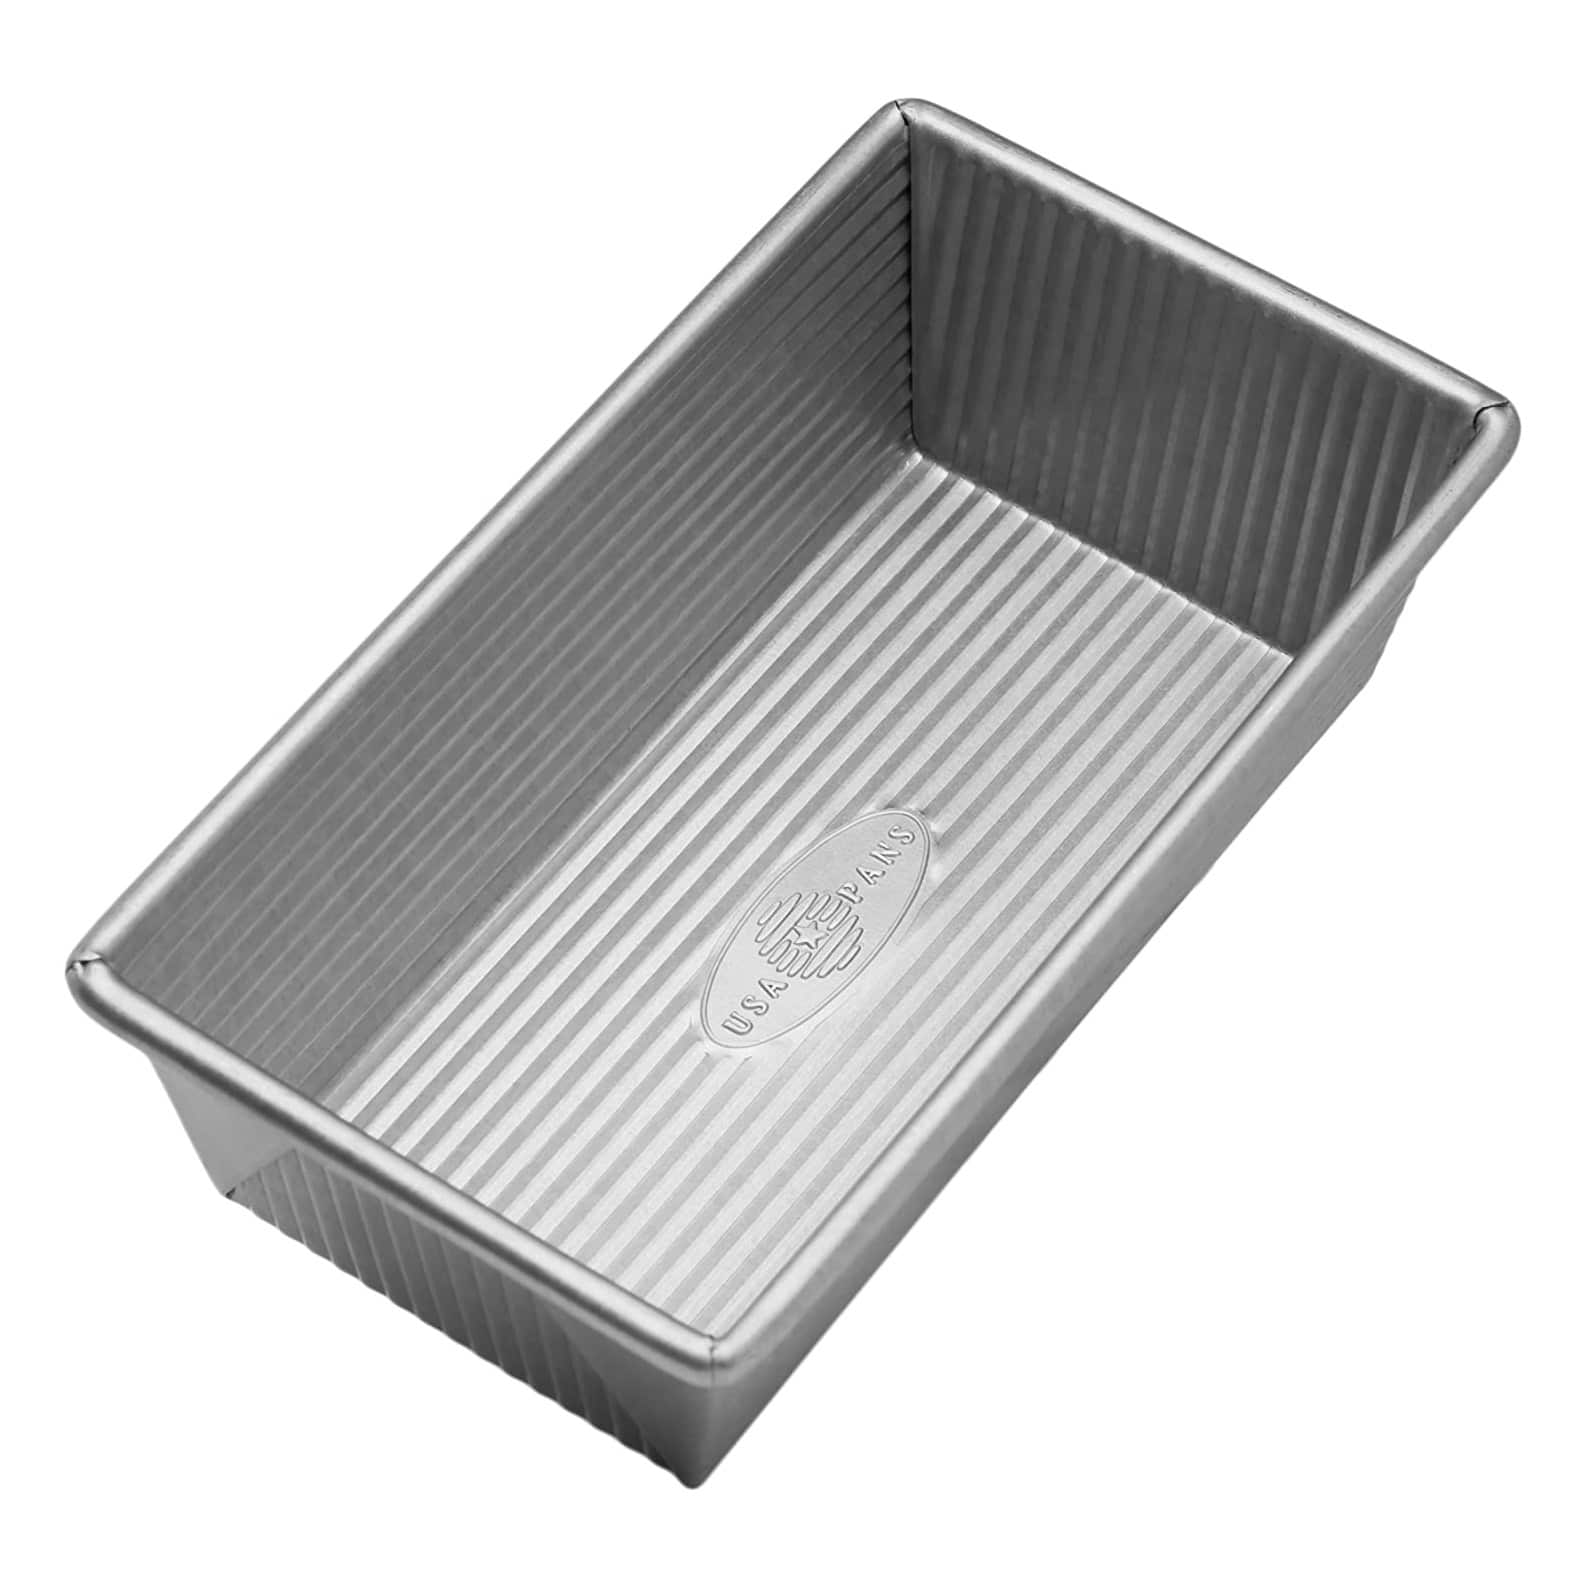 8.5 inch loaf pan